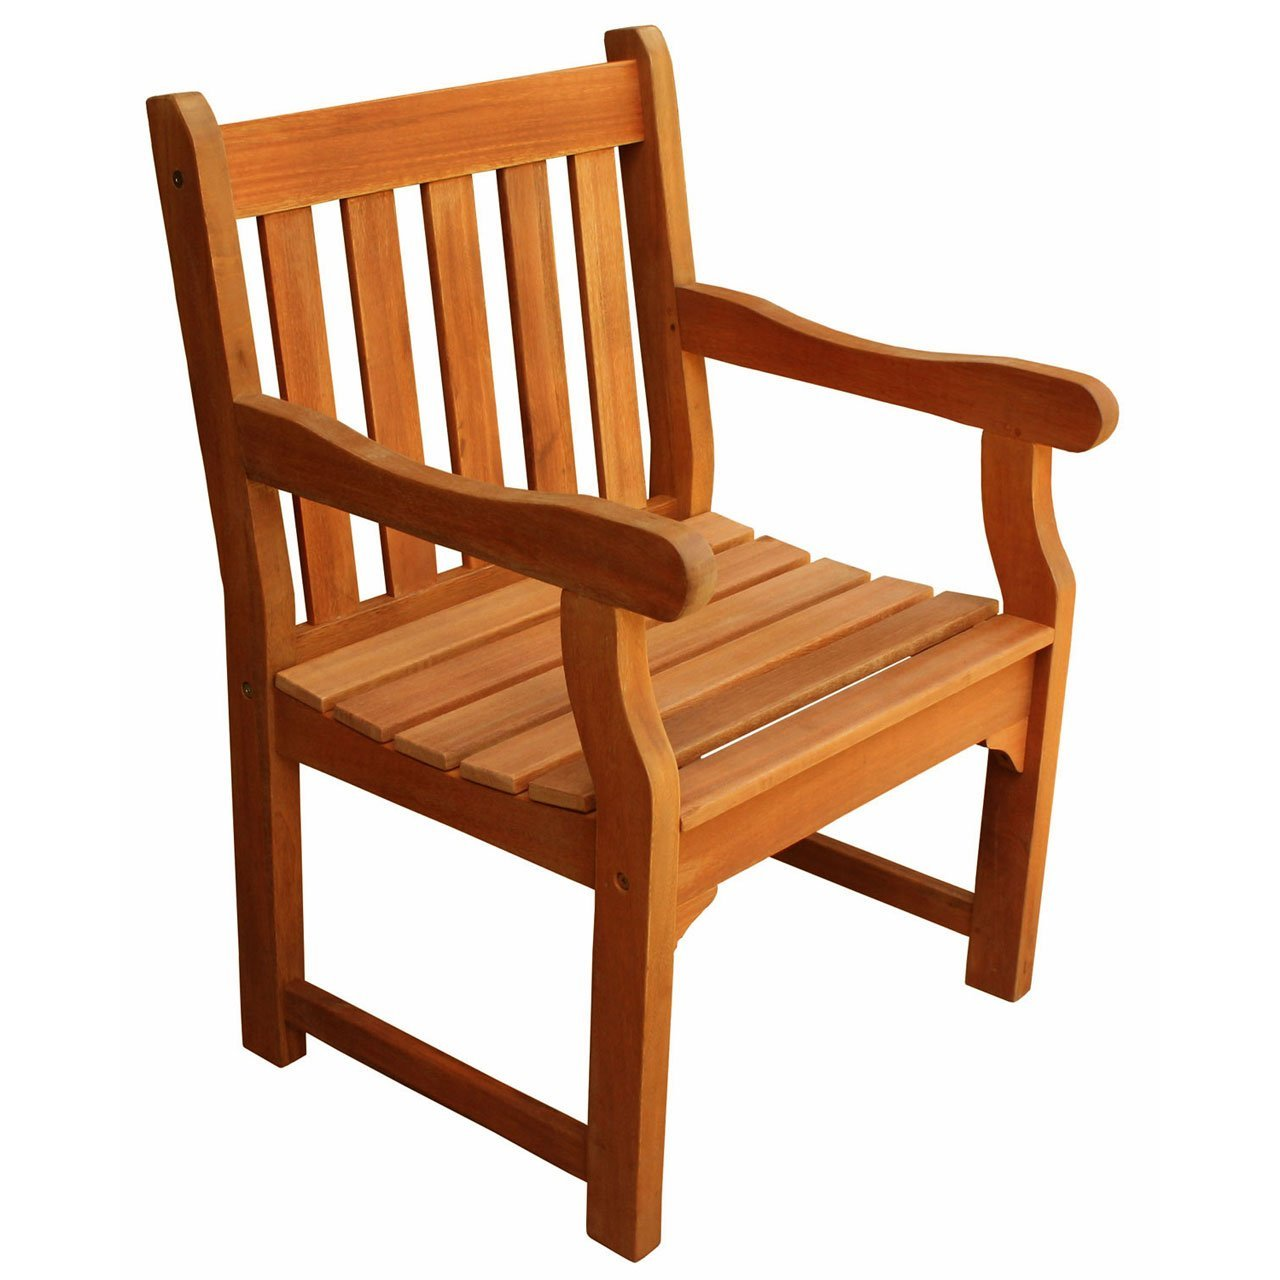 LuuNguyen Adam Outdoor Hardwood Dining Arm Chair Natural Wood Finish